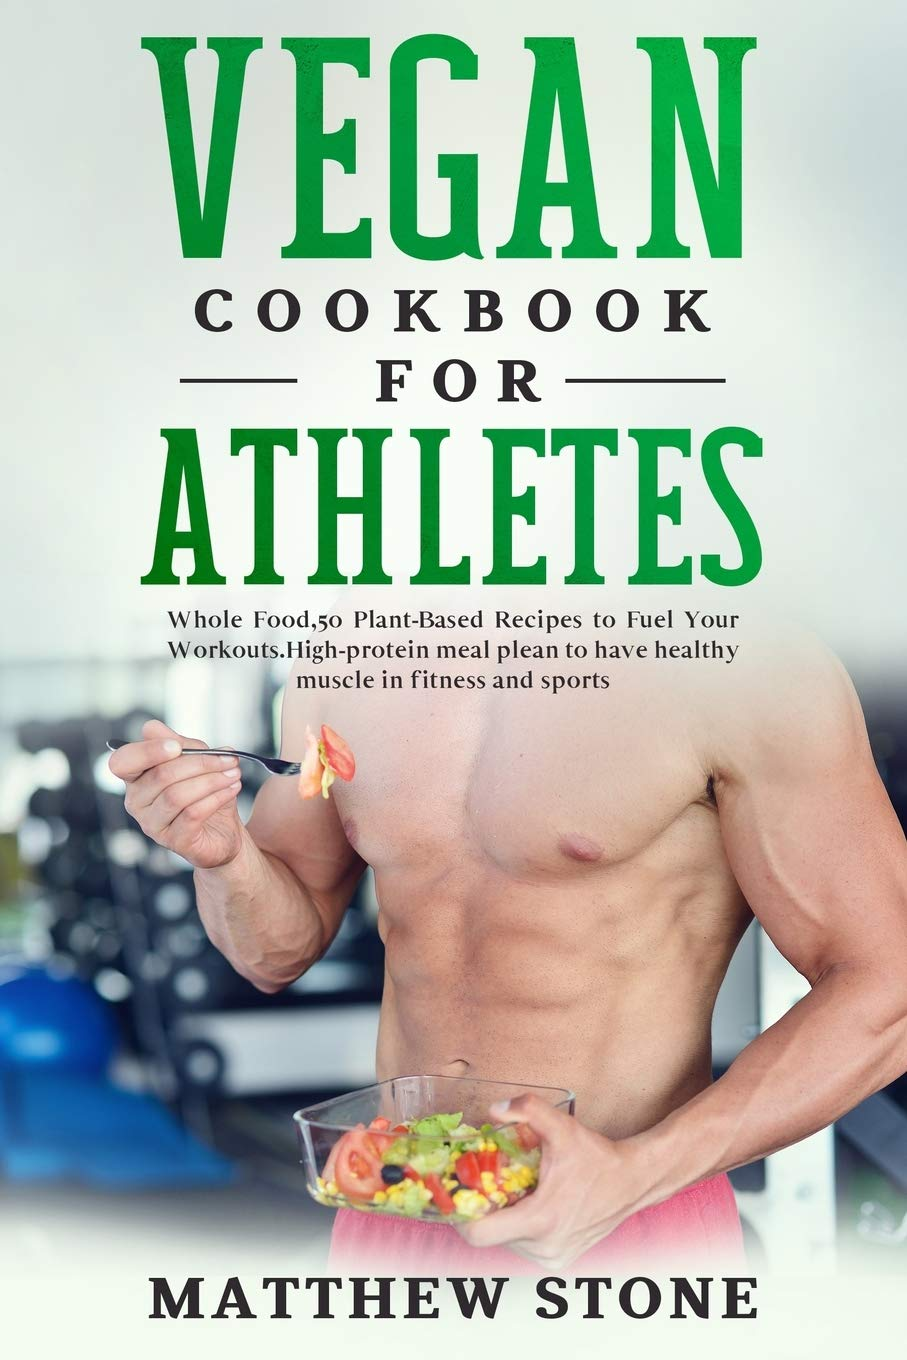 VEGAN COOKBOOK FOR ATHLETES: WHOLE FOOD, 50 PLANT-BASED RECIPES TO FUEL YOUR WORKOUTS.HIGH-PROTEIN MEAL PLEAN TO HAVE HEALTHY MUSCLE IN FITNESS AND SPORTS.